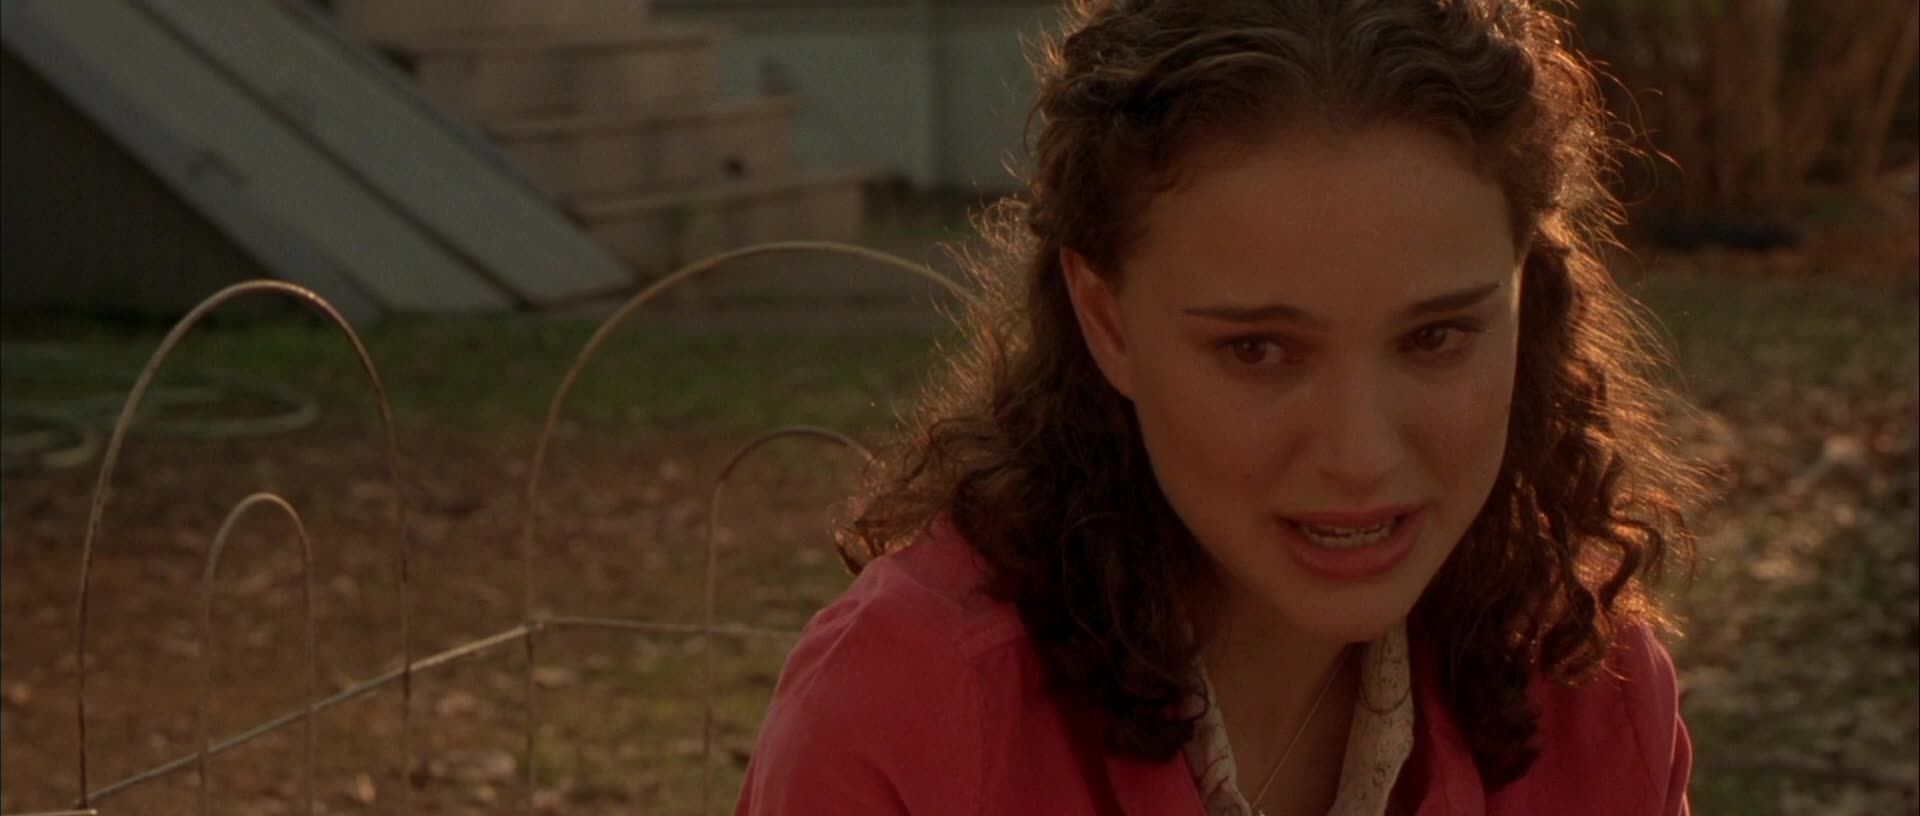 Natalie Portman in the beautiful film 'Garden State' (2004